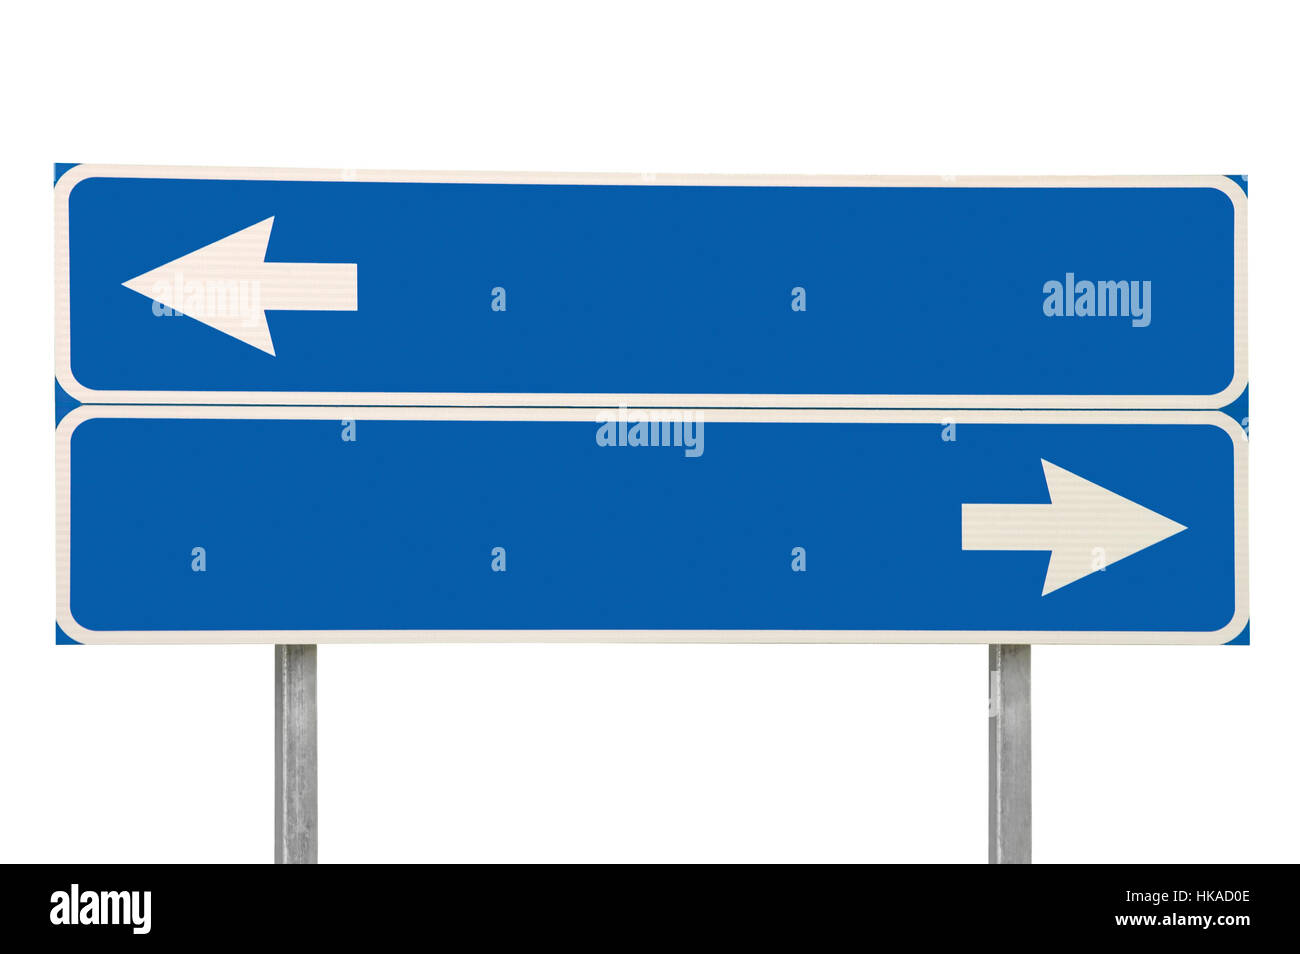 Bidirectional Arrows High Resolution Stock Photography And Images Alamy